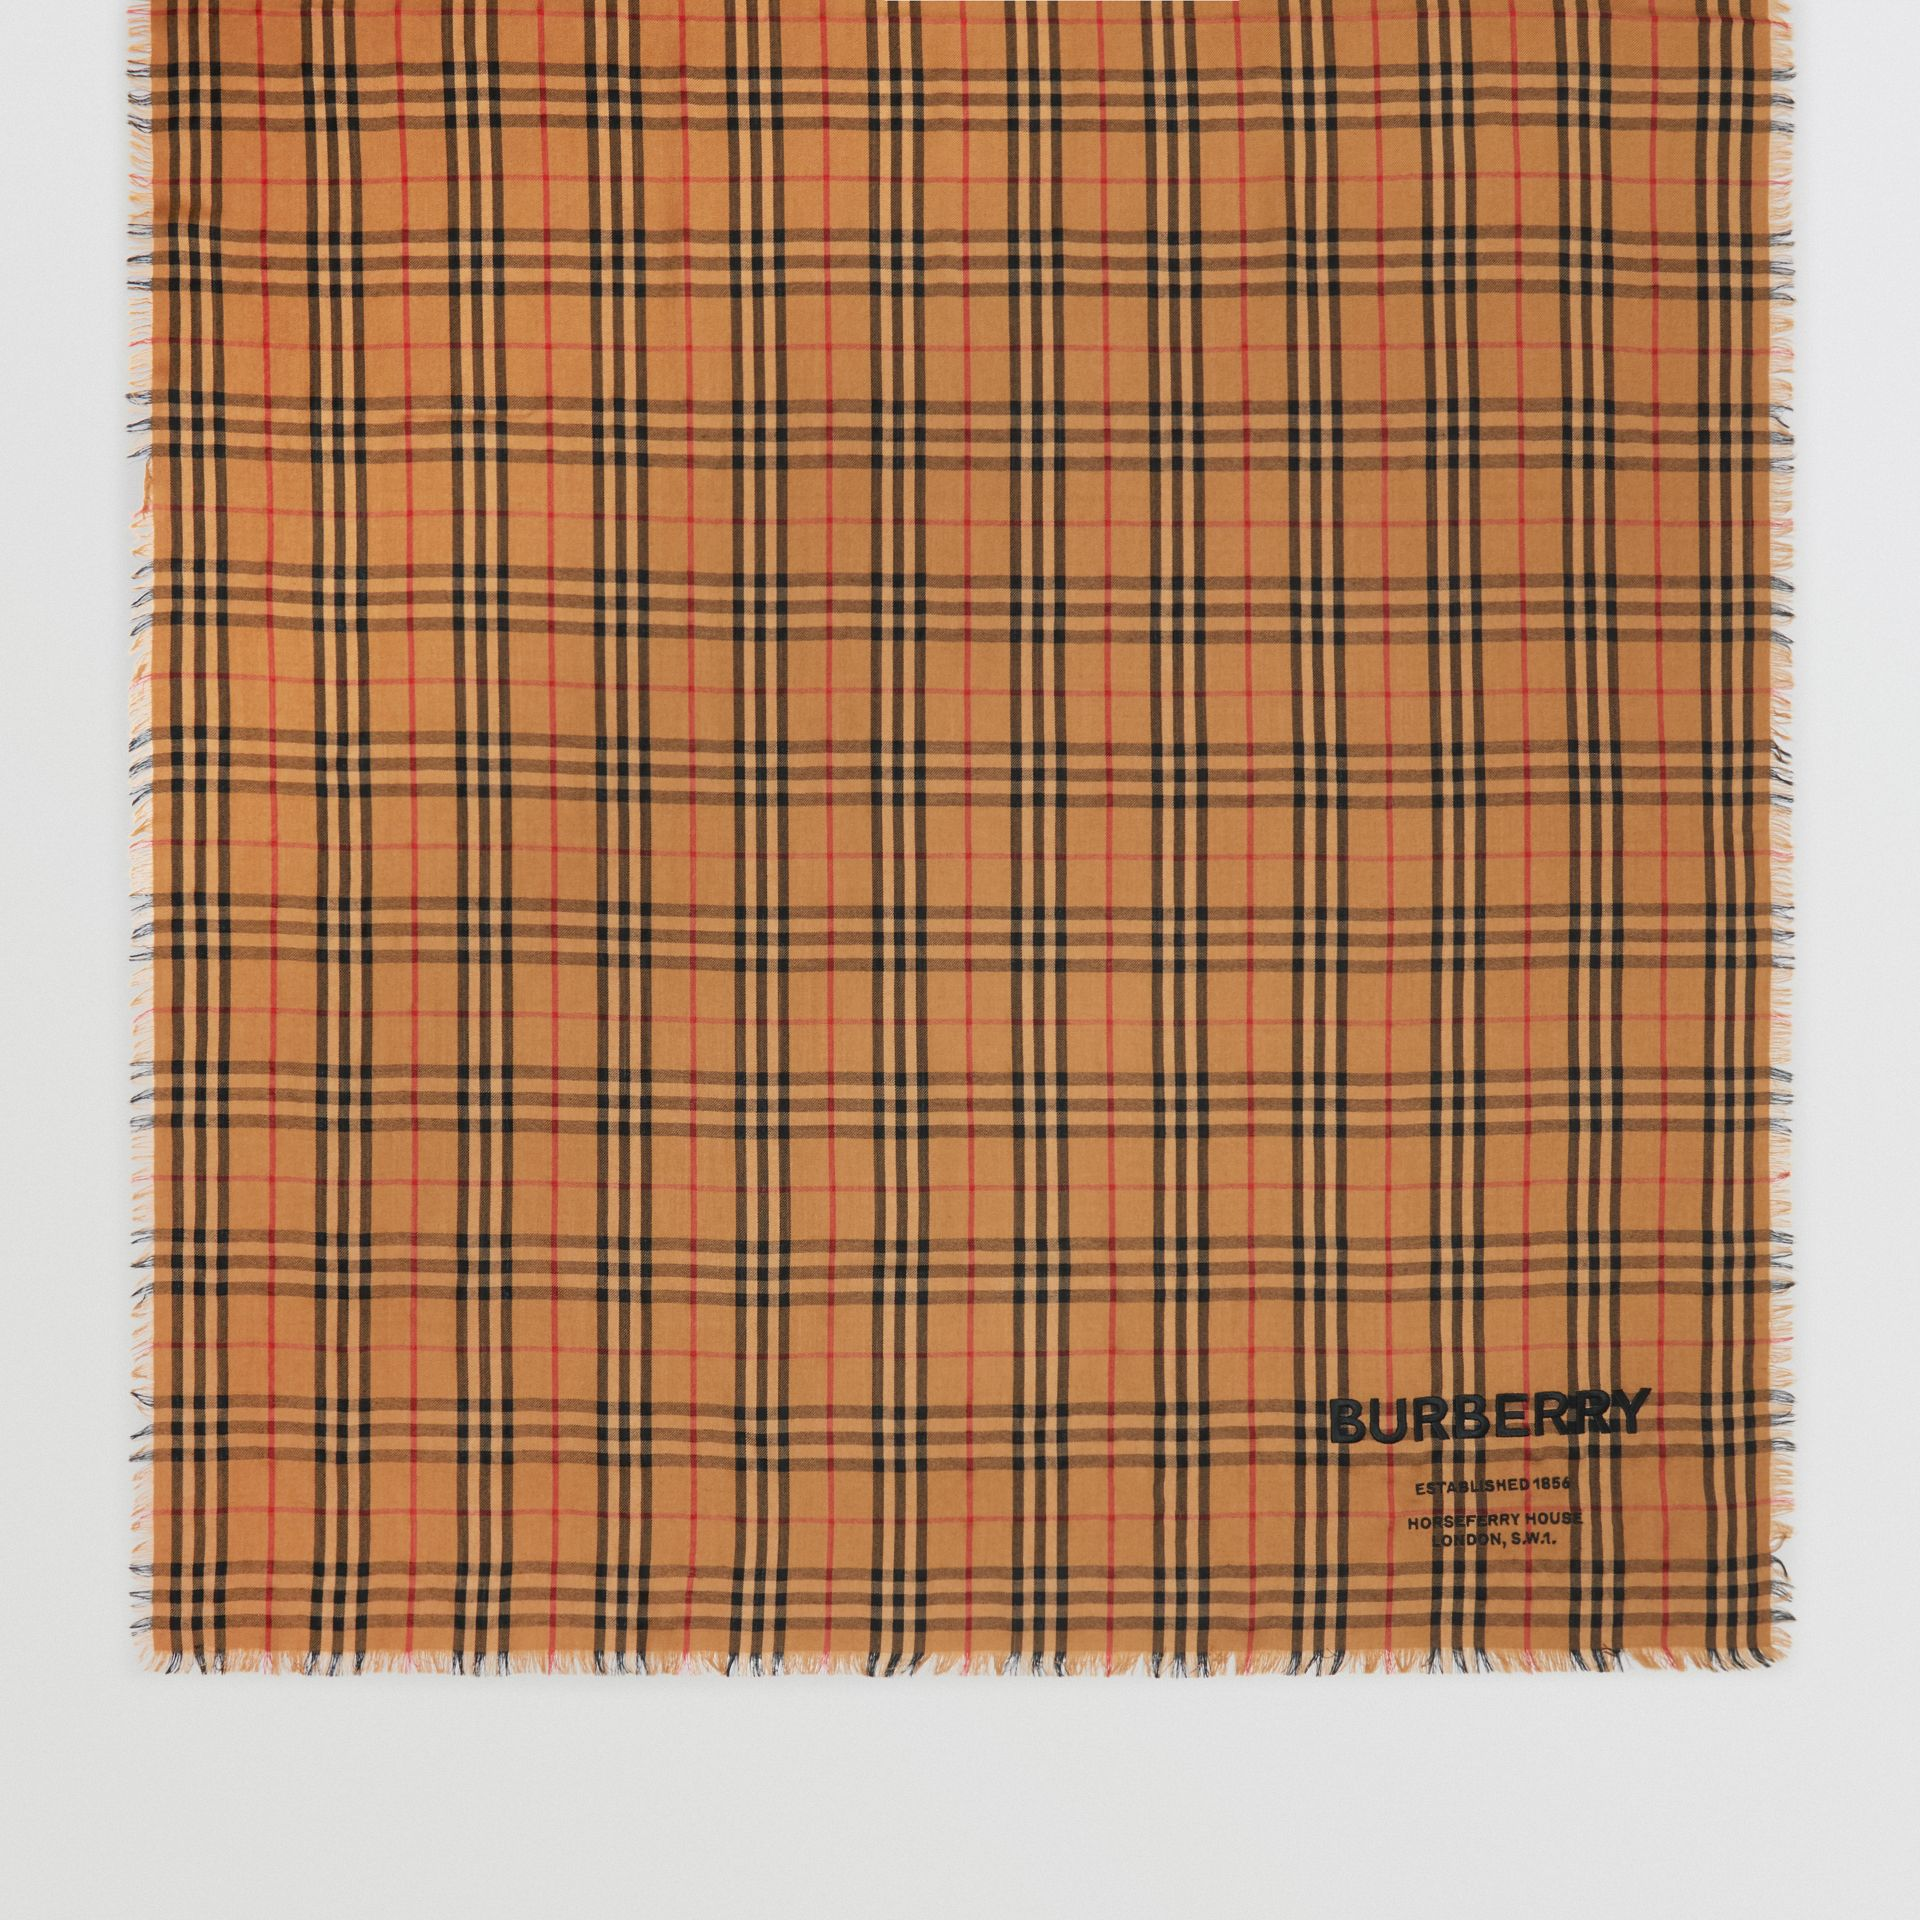 Embroidered Vintage Check Lightweight Cashmere Scarf in Camel | Burberry - gallery image 2